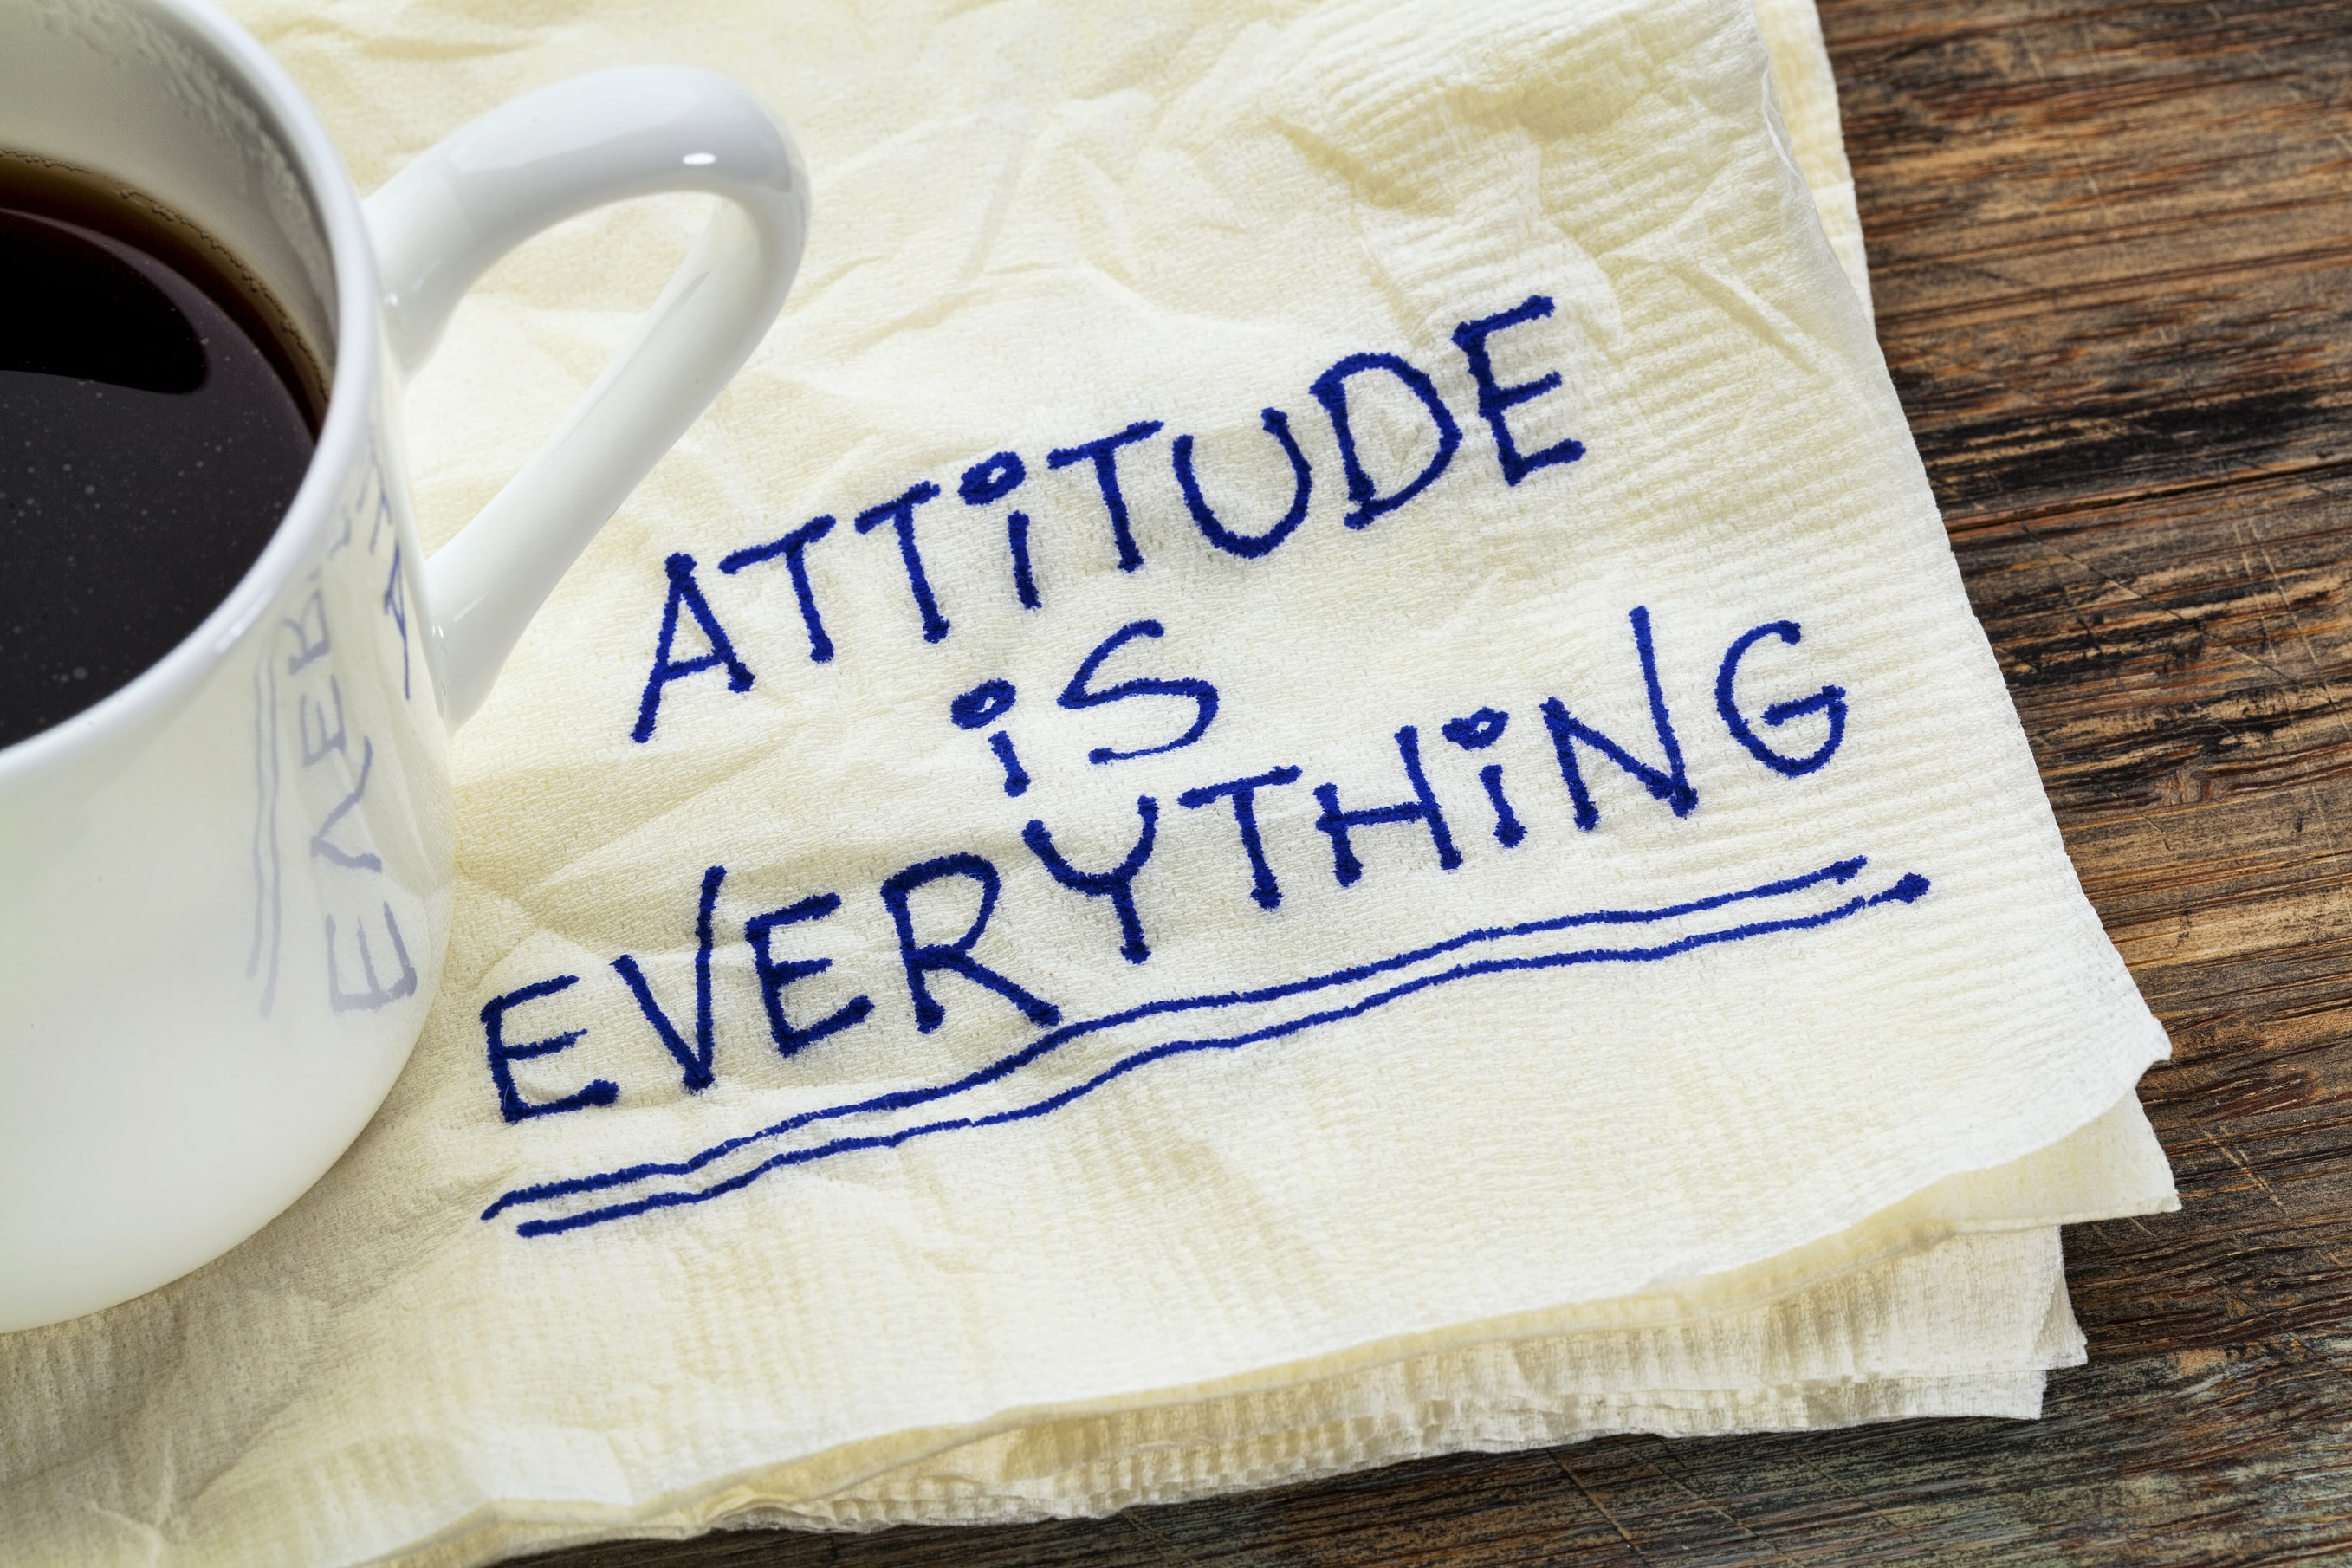 Attitude is everything – showing gravitas